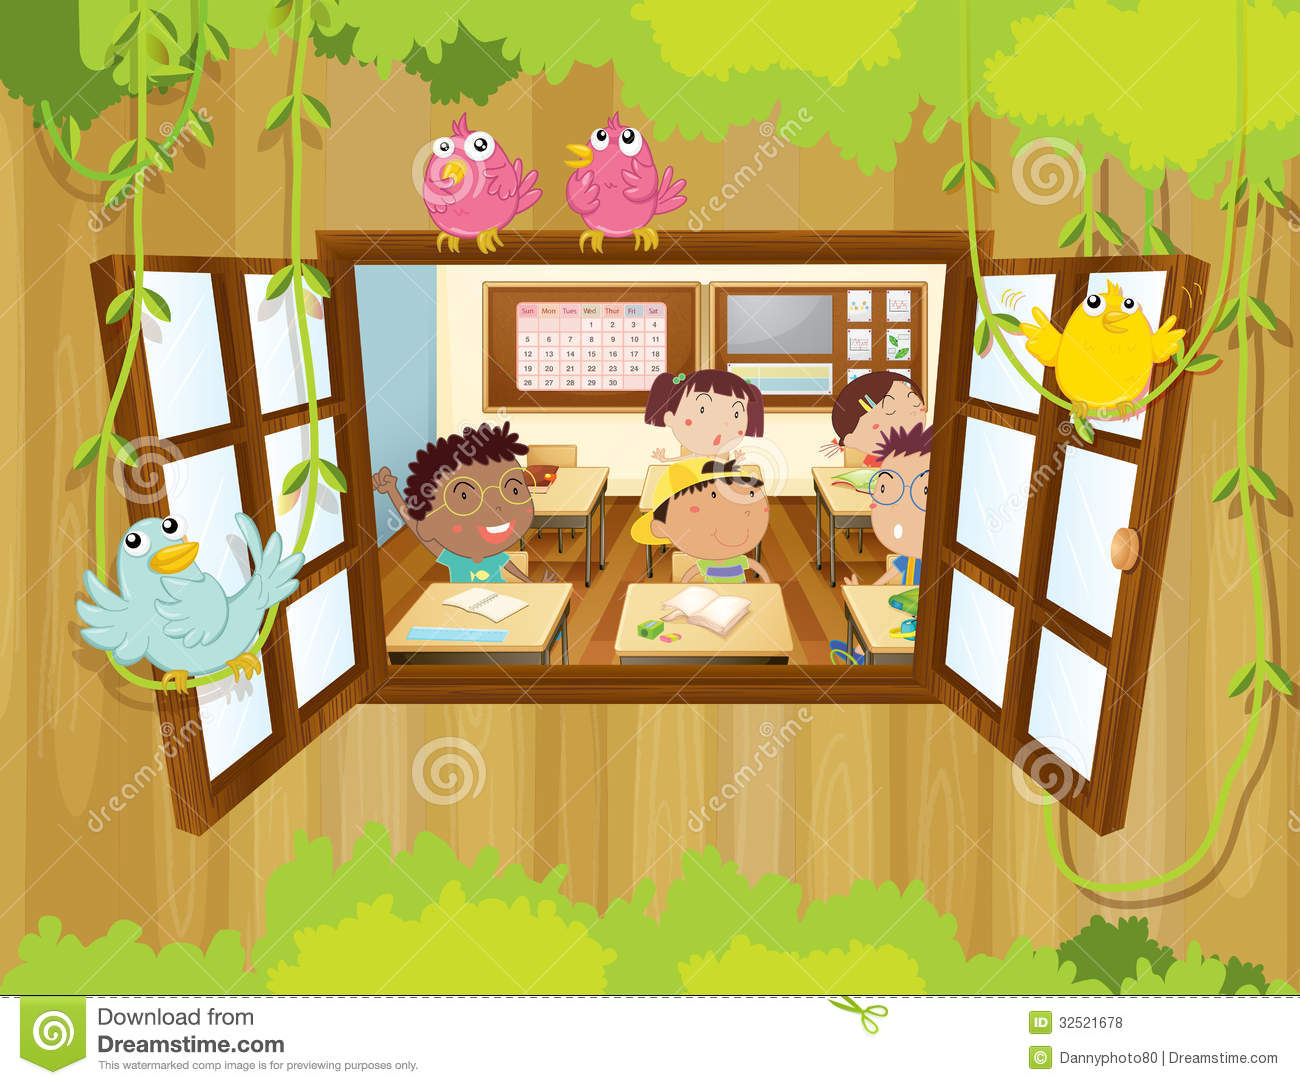 Students Inside The Classroom With Birds At The Window Stock Vector ... for Inside Window Clipart  183qdu